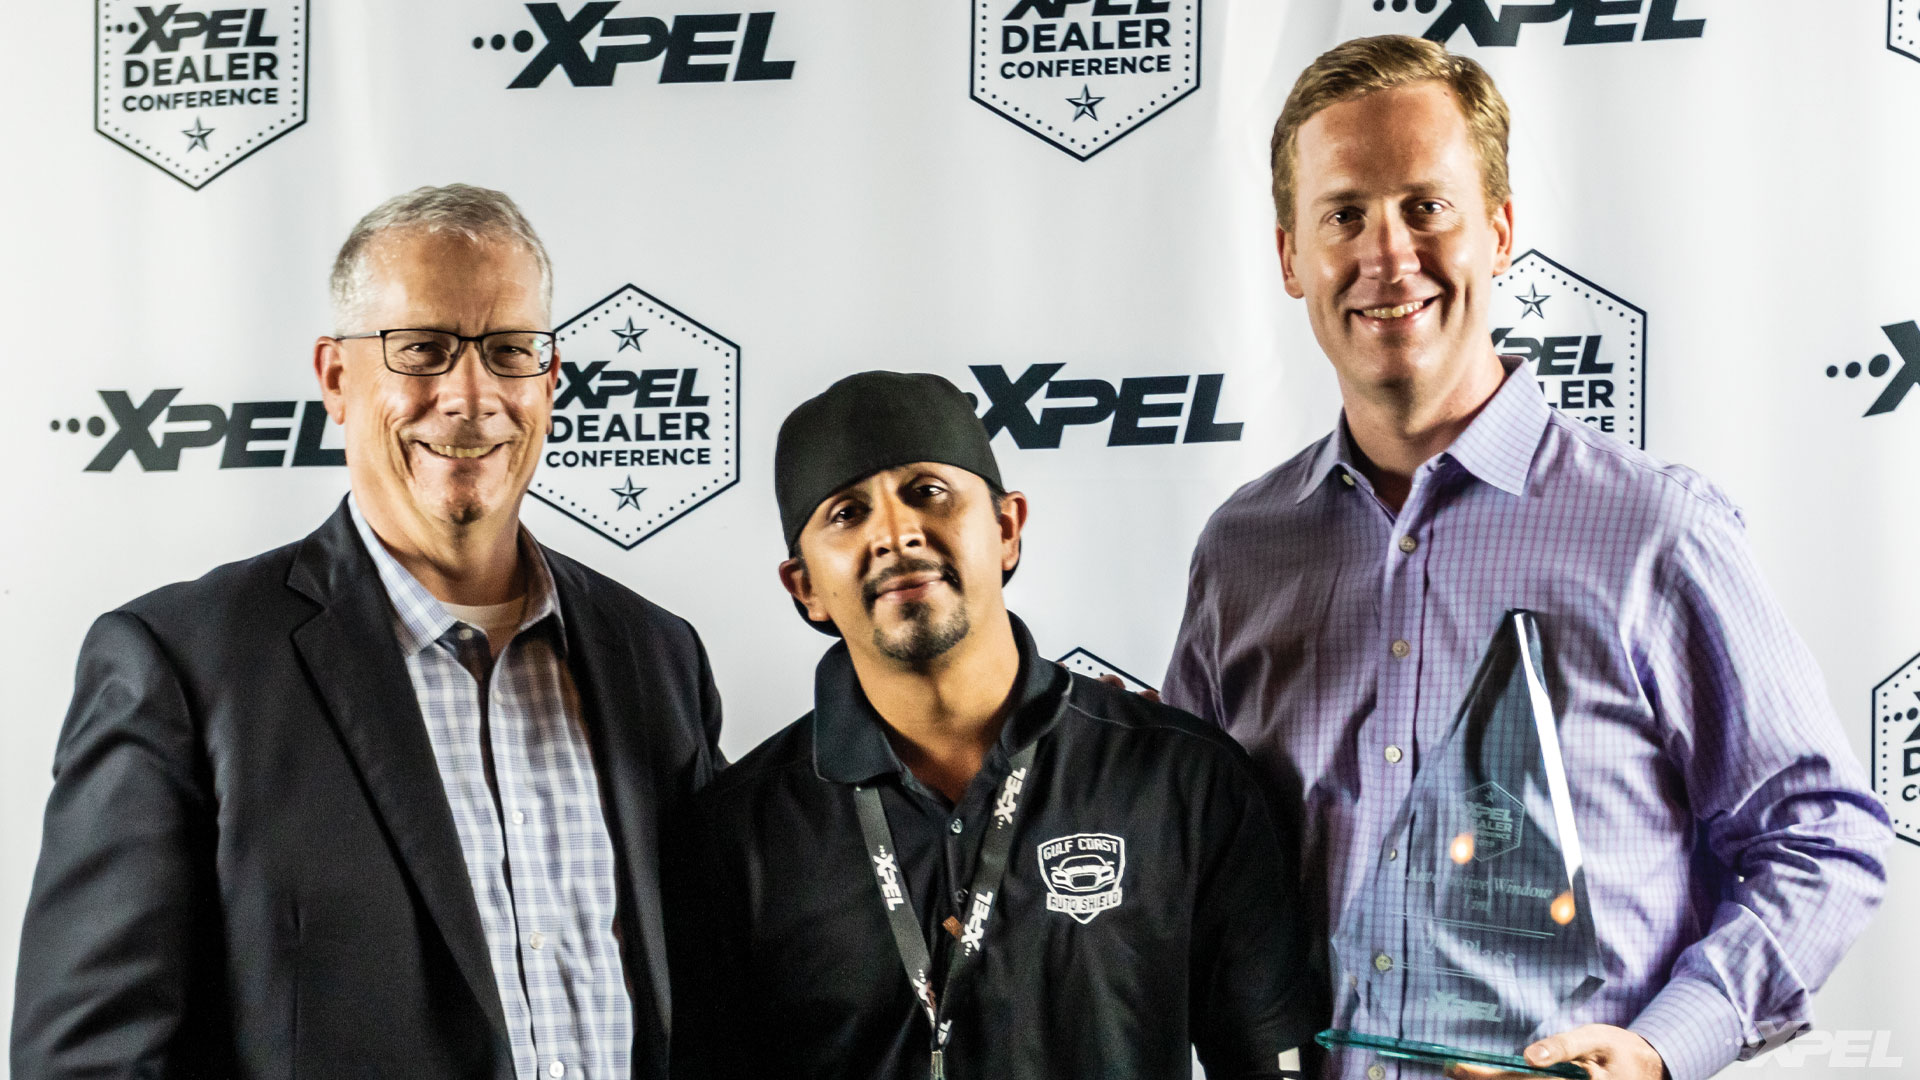 XPEL Dealer Conference 2nd Place Window Film / Window Tint Winner: Alex Rosales - Gulf Coast Auto Shield